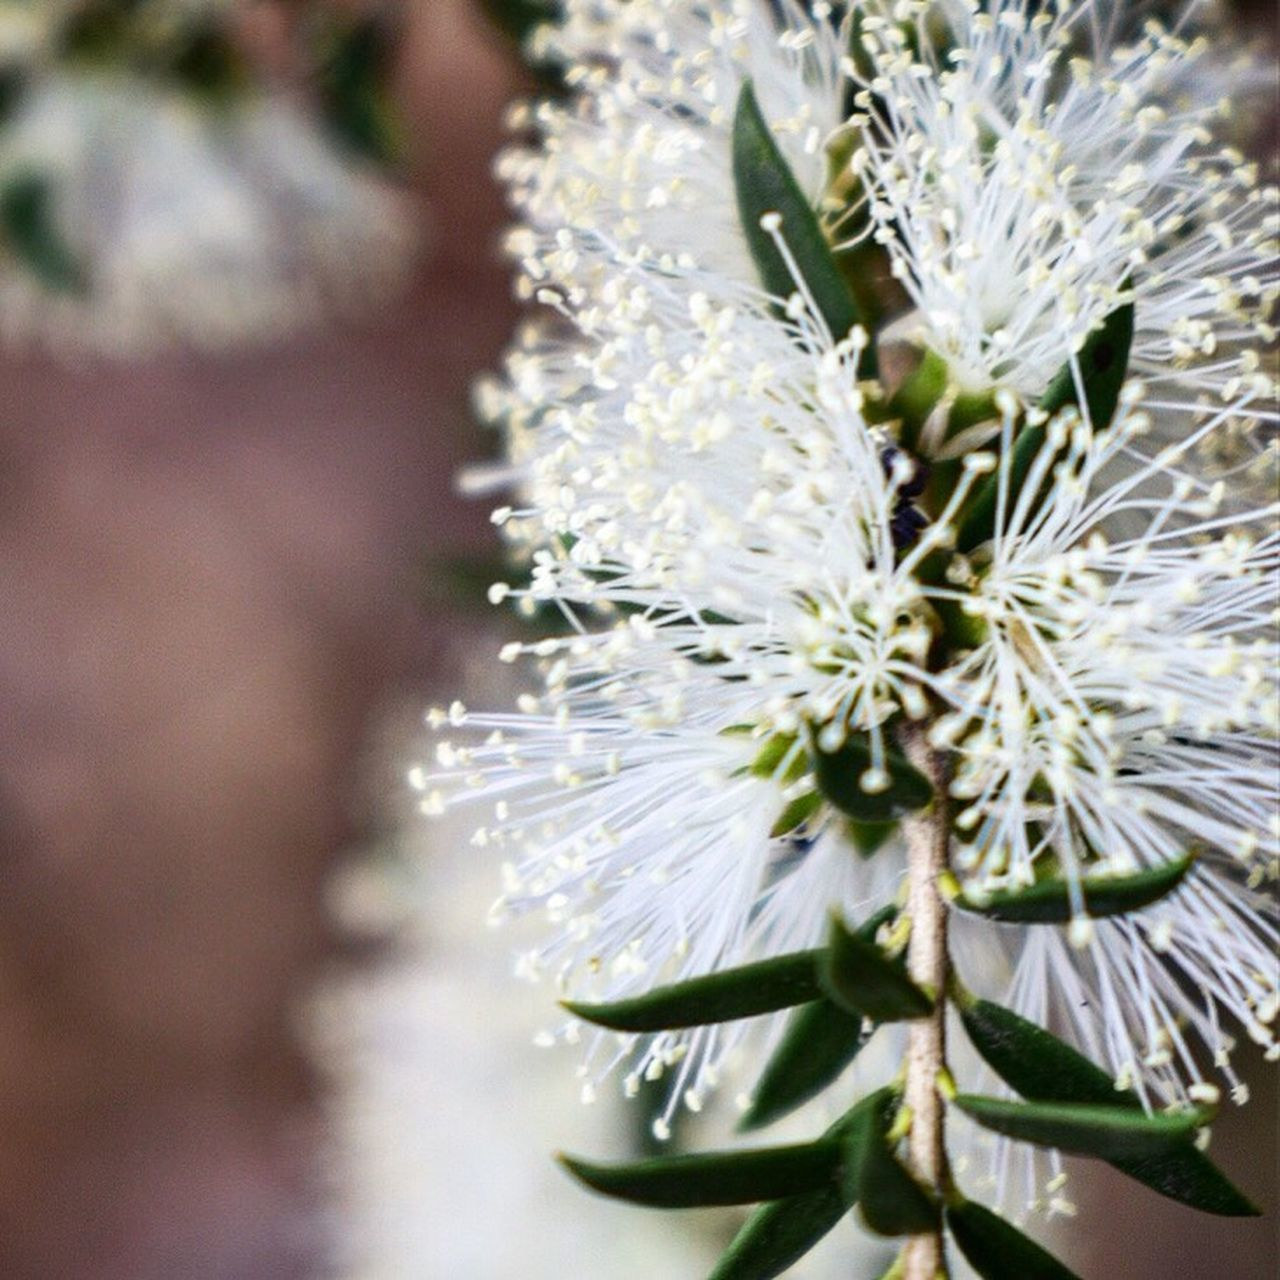 Flower Nature Growth Beauty In Nature Close-up Plant Fragility Freshness No People Blooming Outdoors Flower Head Day Water